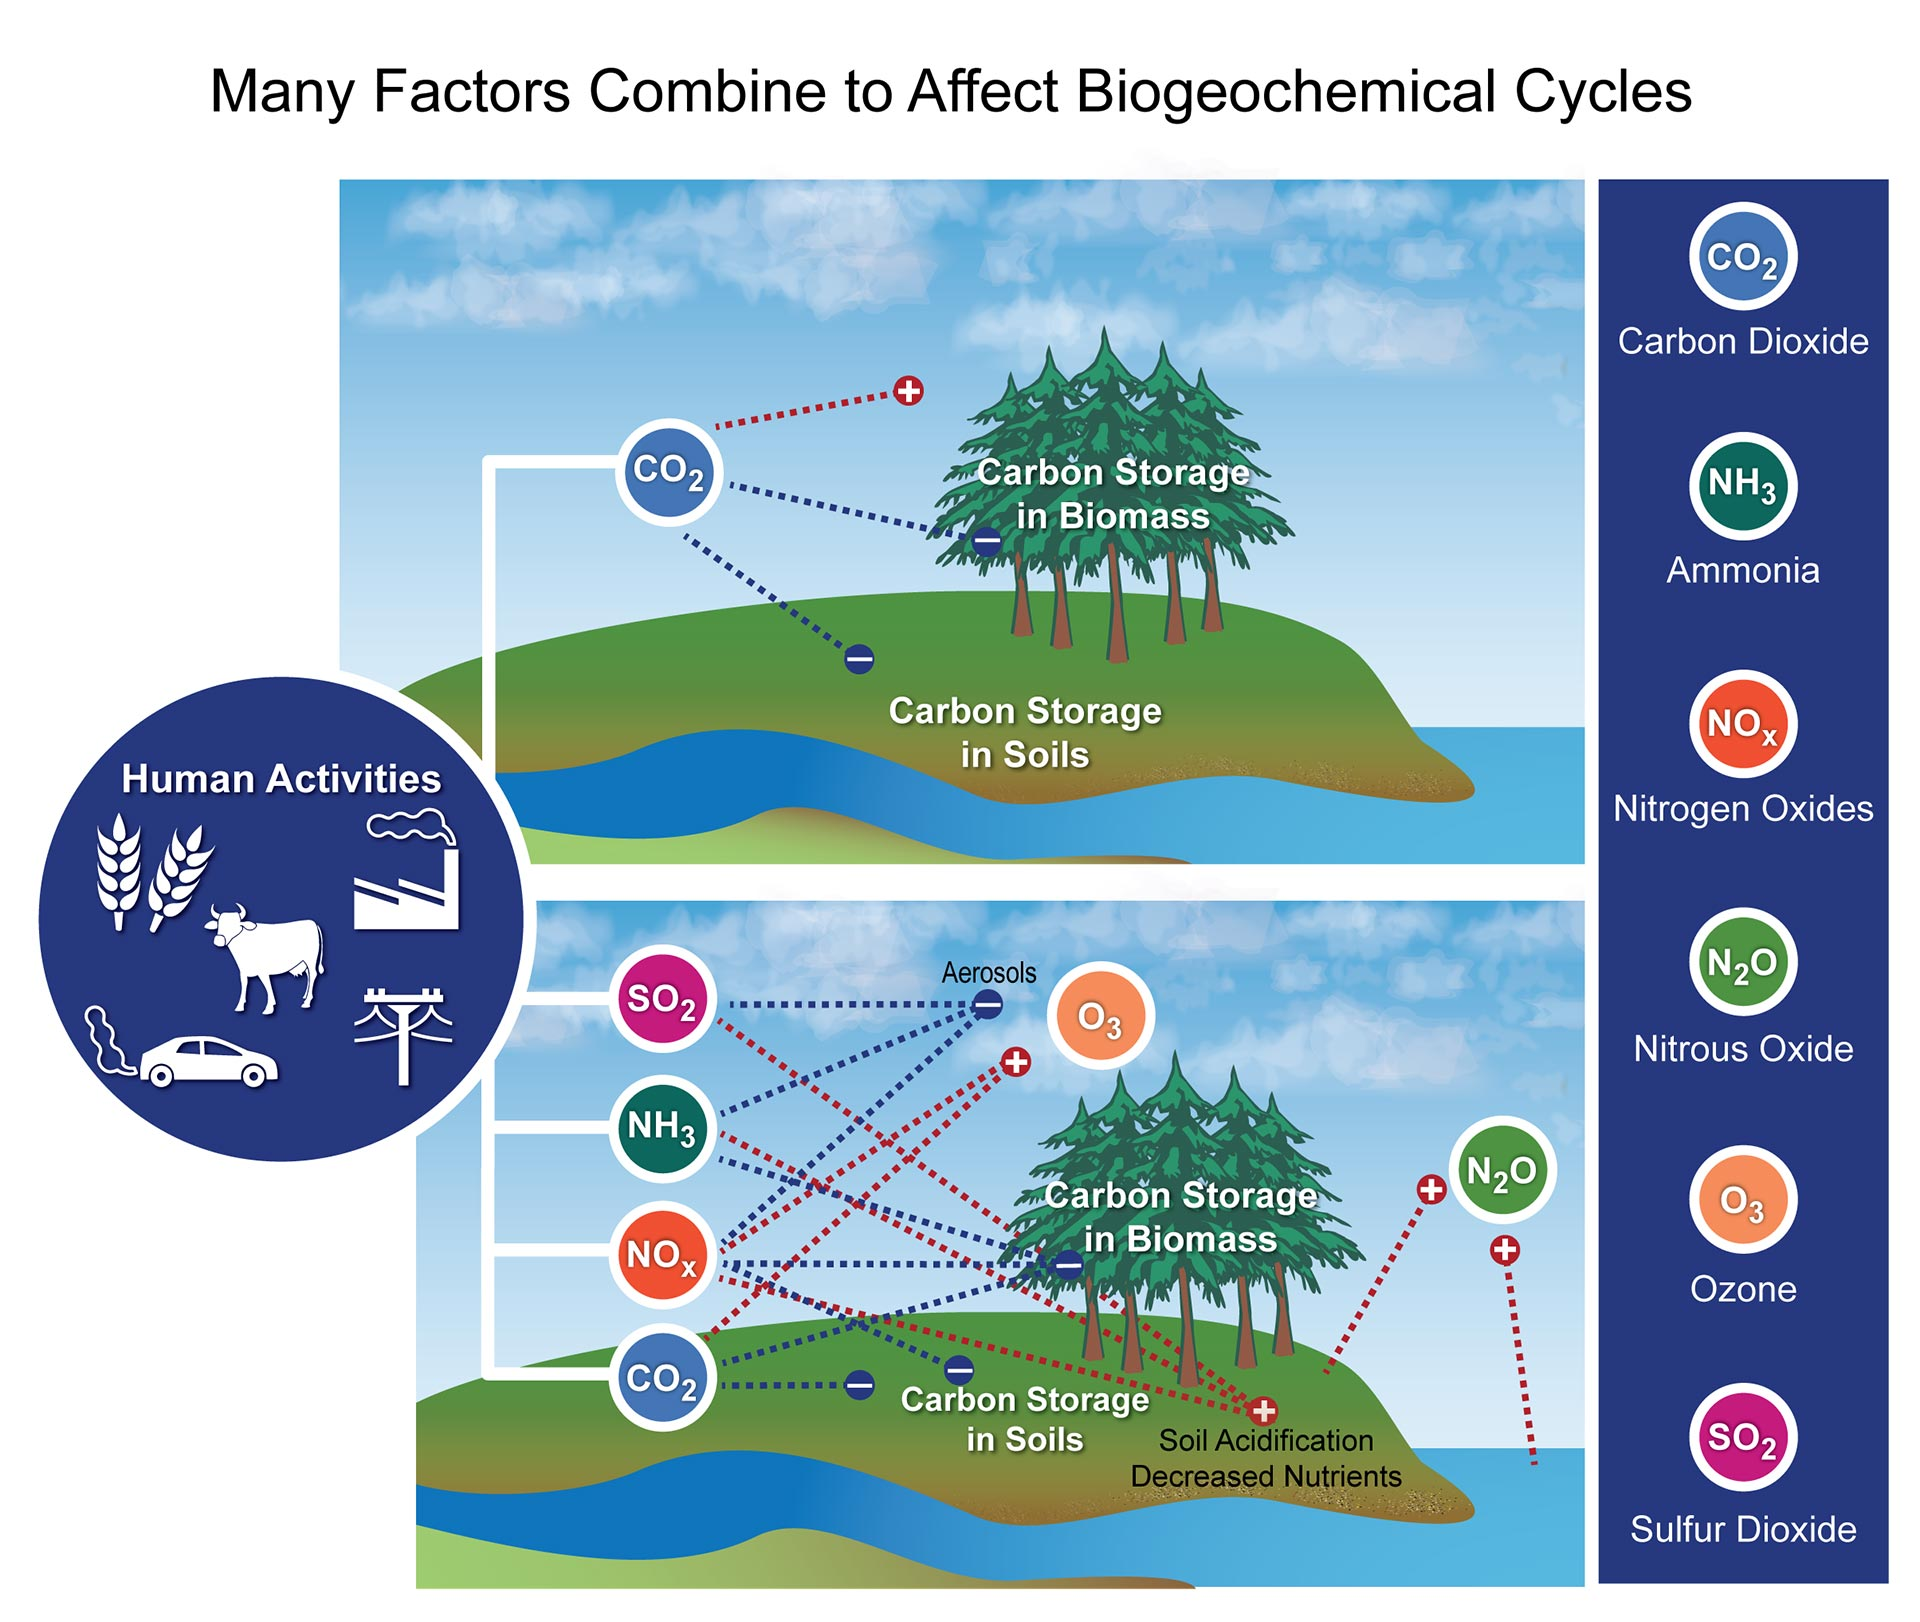 describe the relationship between anthropogenic carbon dioxide emissions and climate change